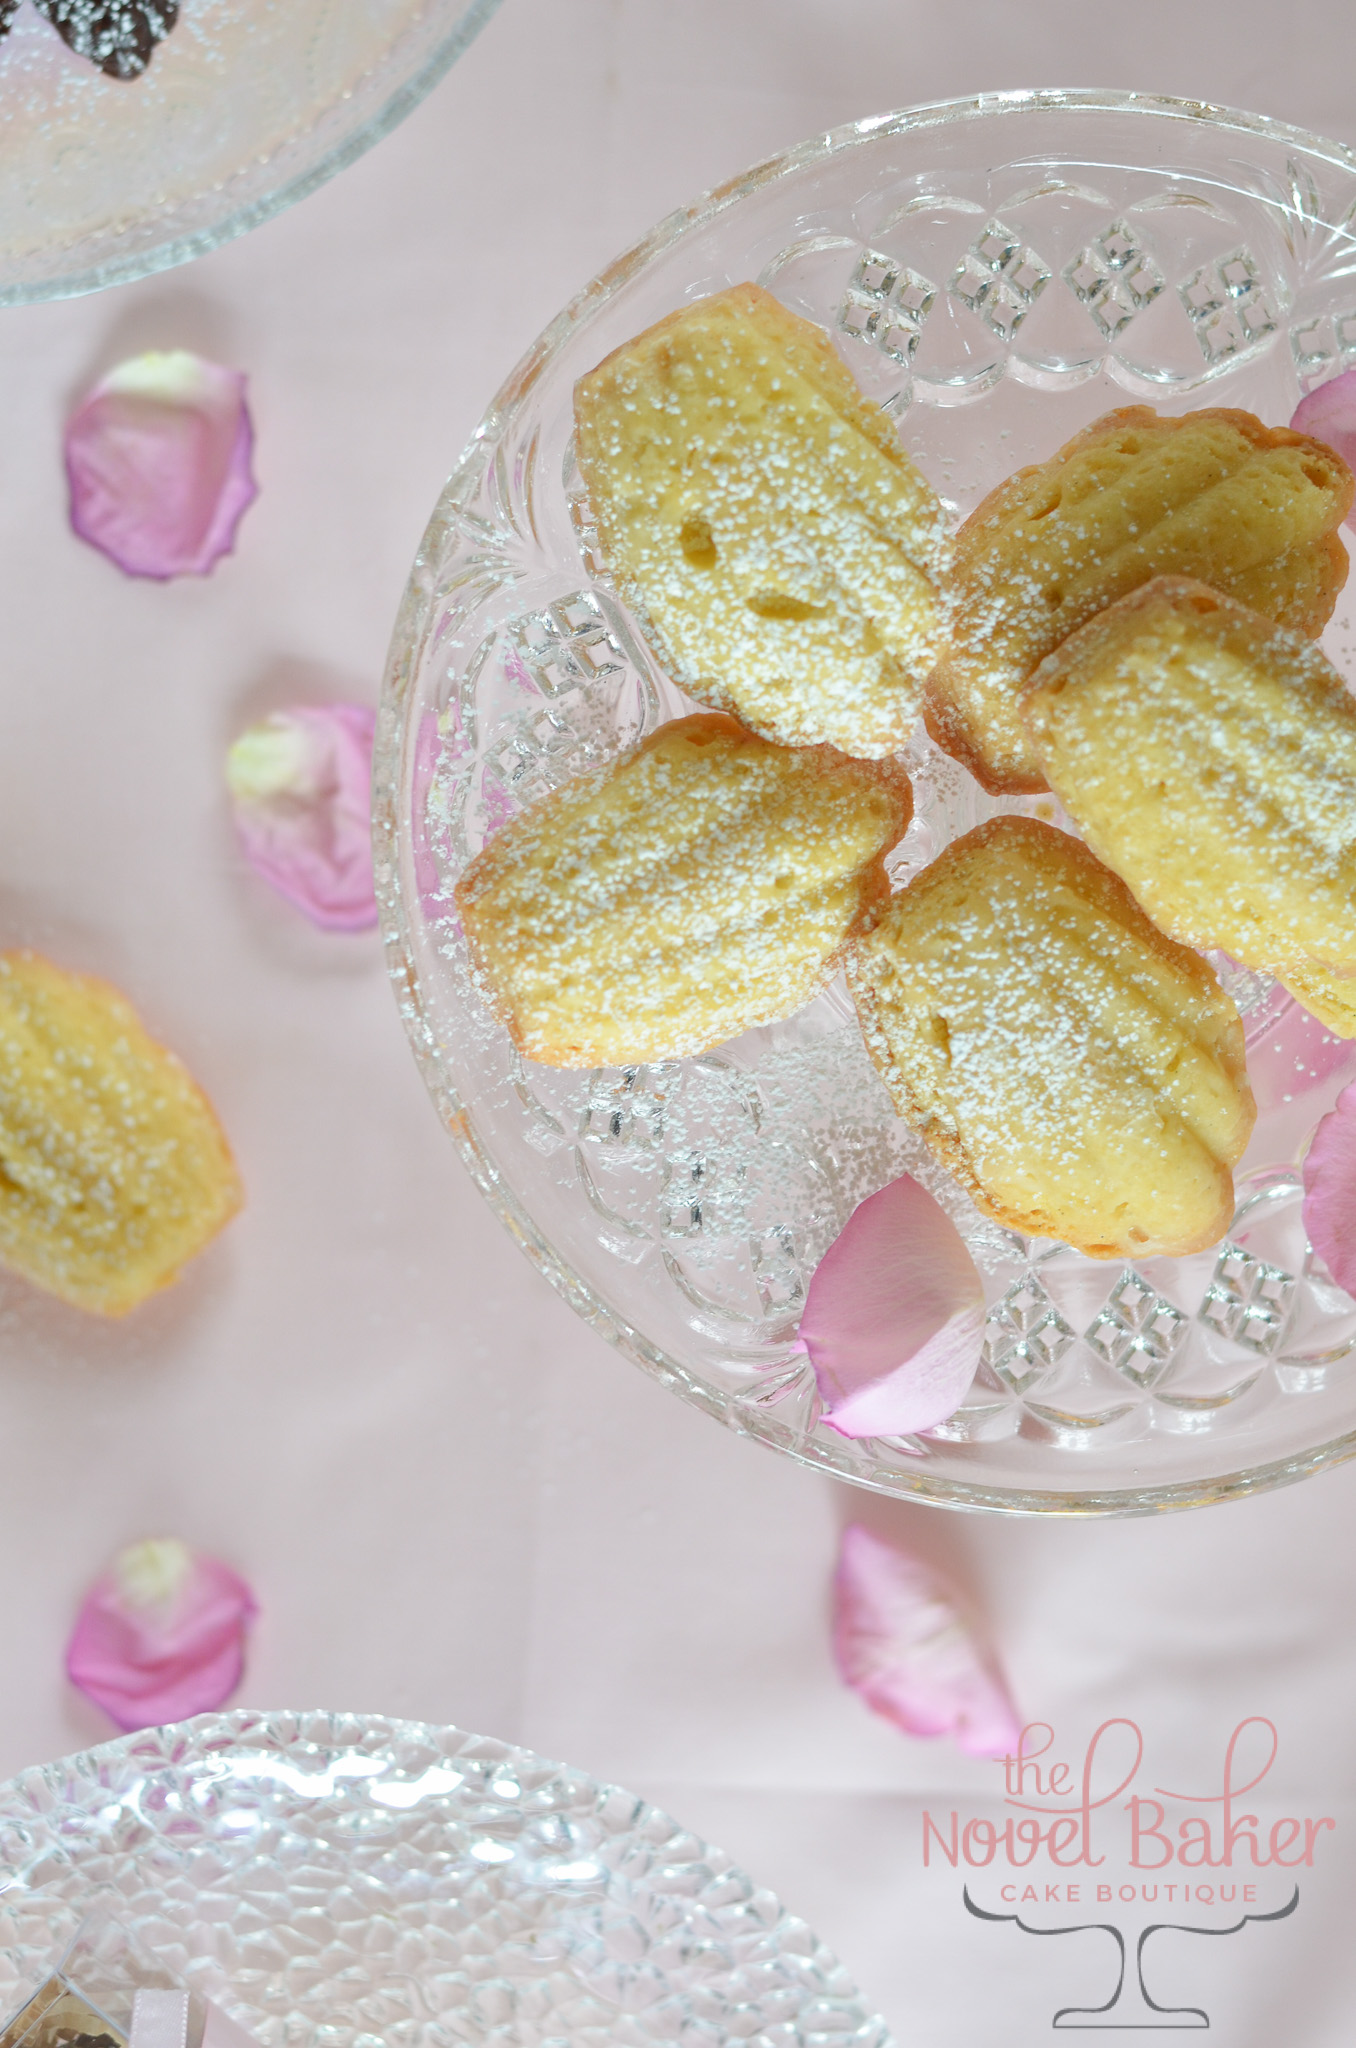 Lemon Madeleines sprinkled with sugar set upon a glass pedestal with rose petals